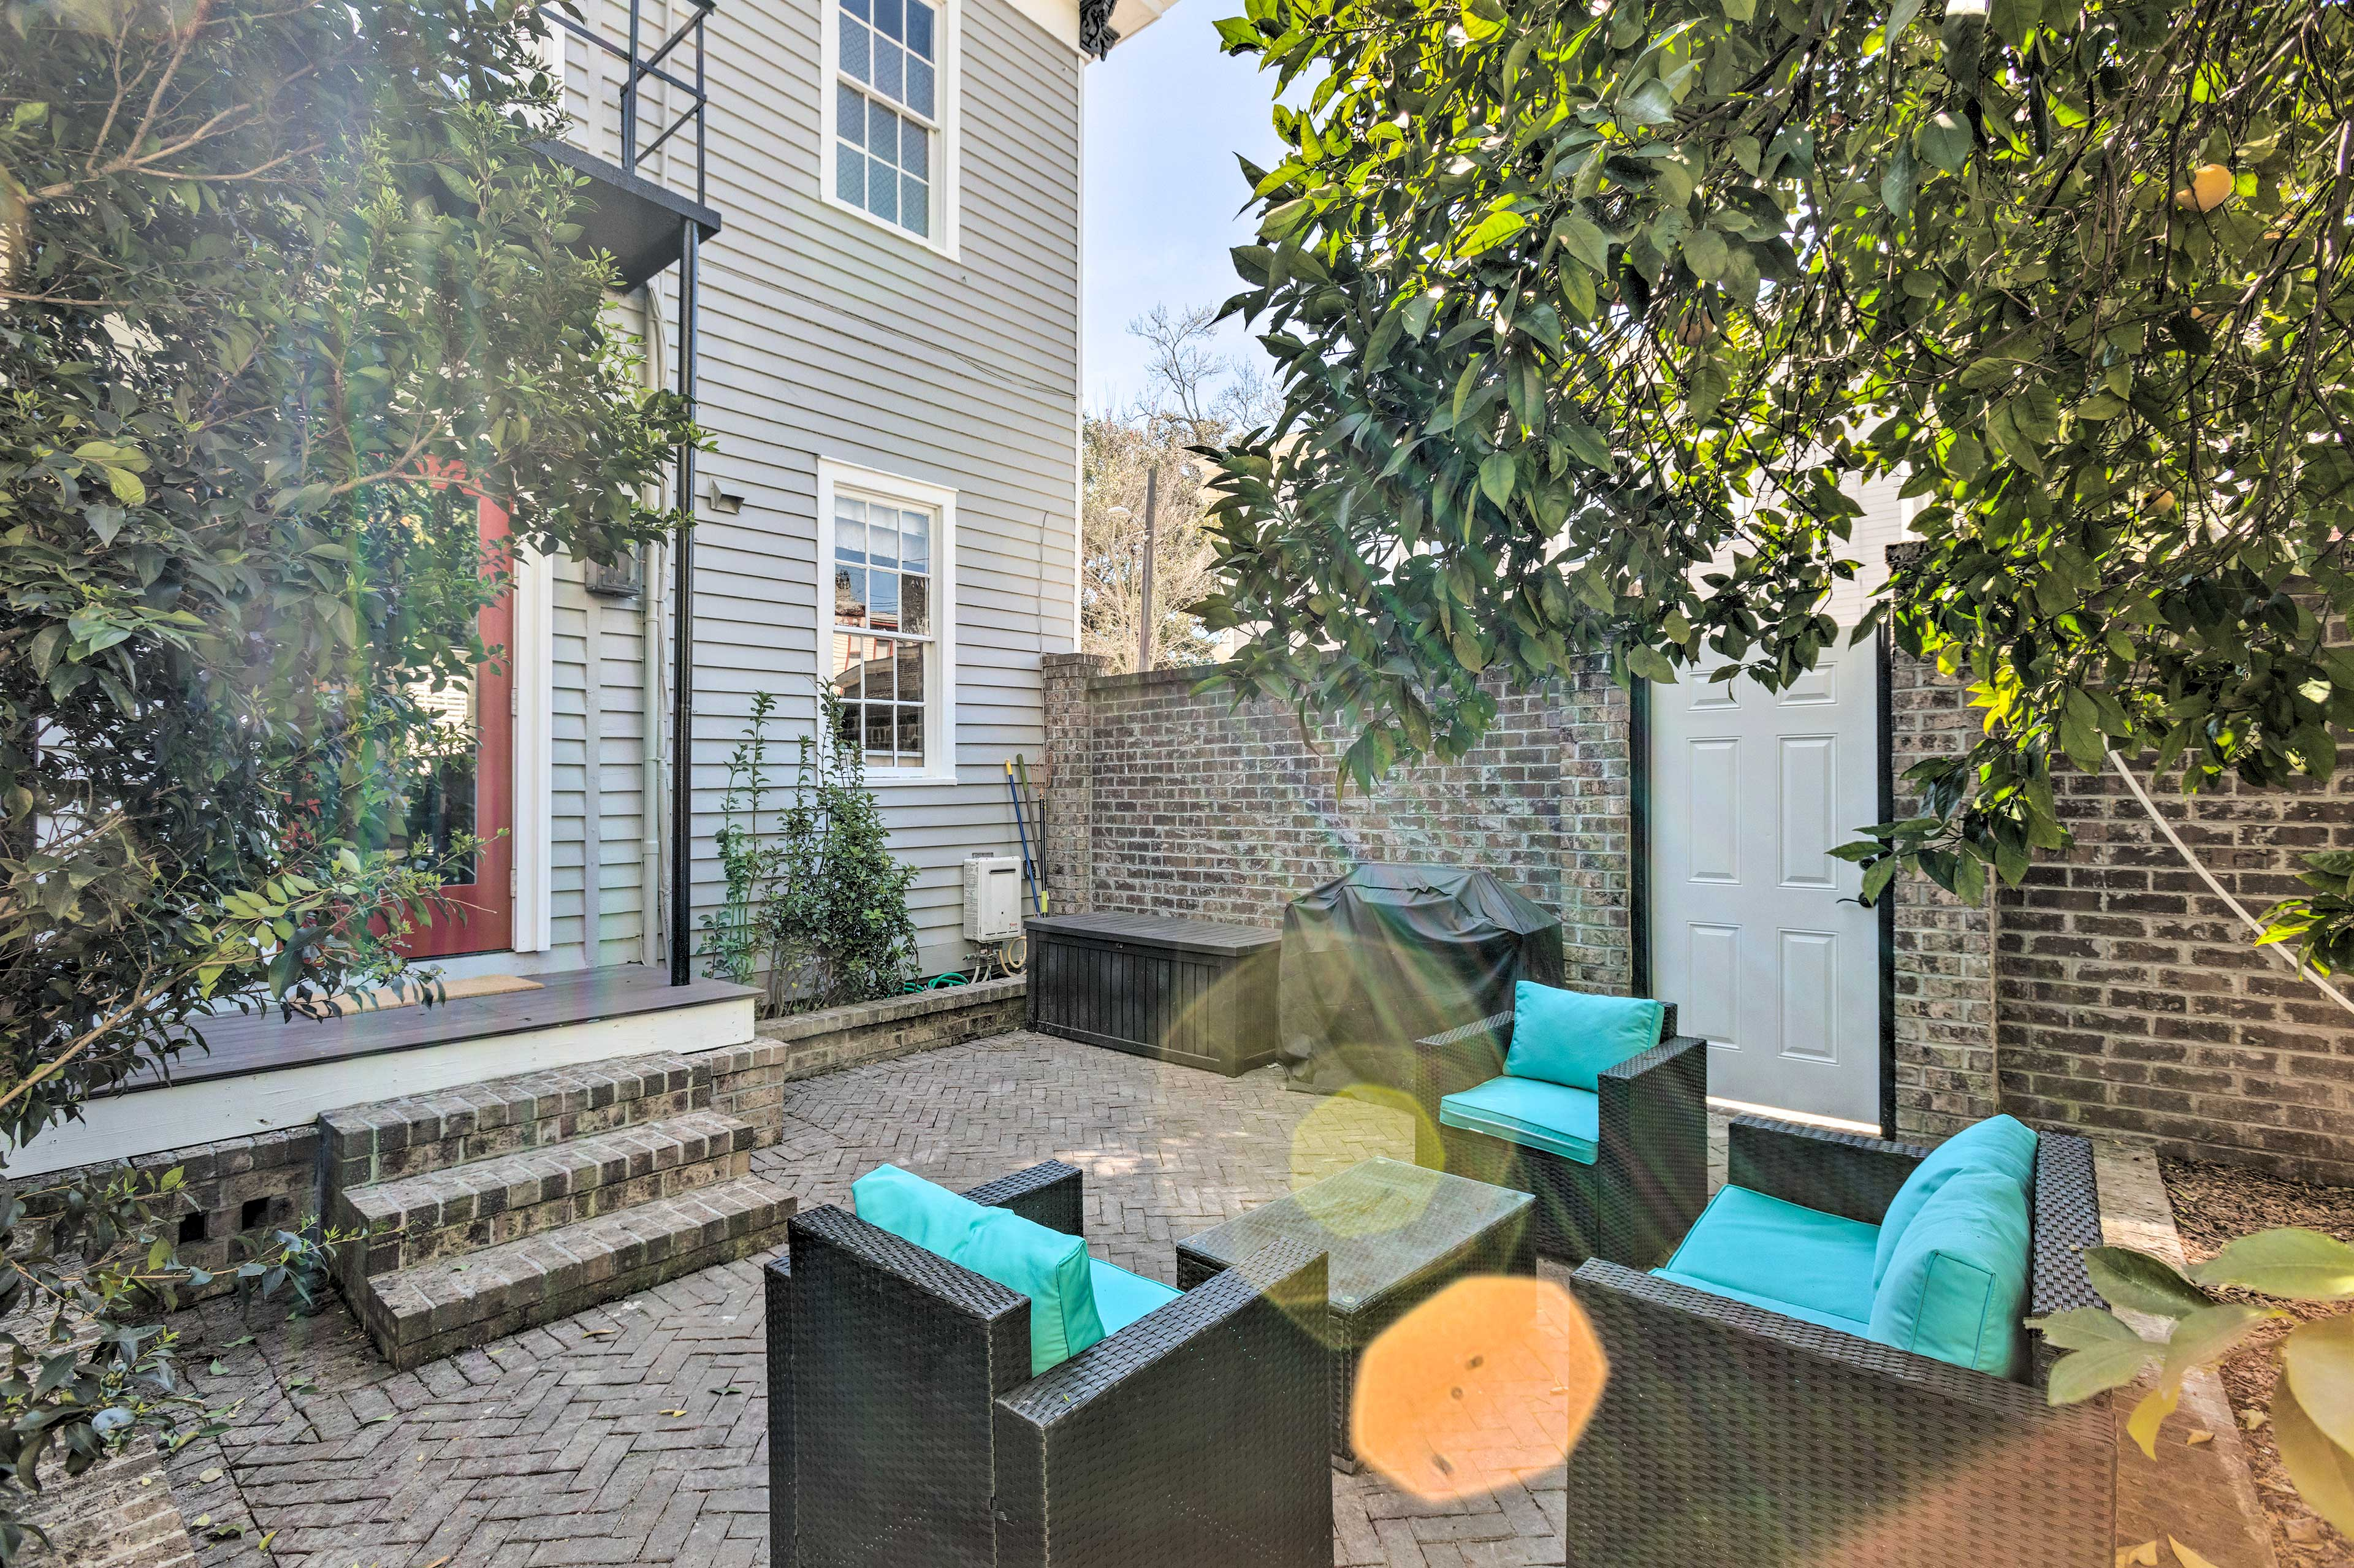 The patio area is the perfect spot to grill out and sip mint juleps.